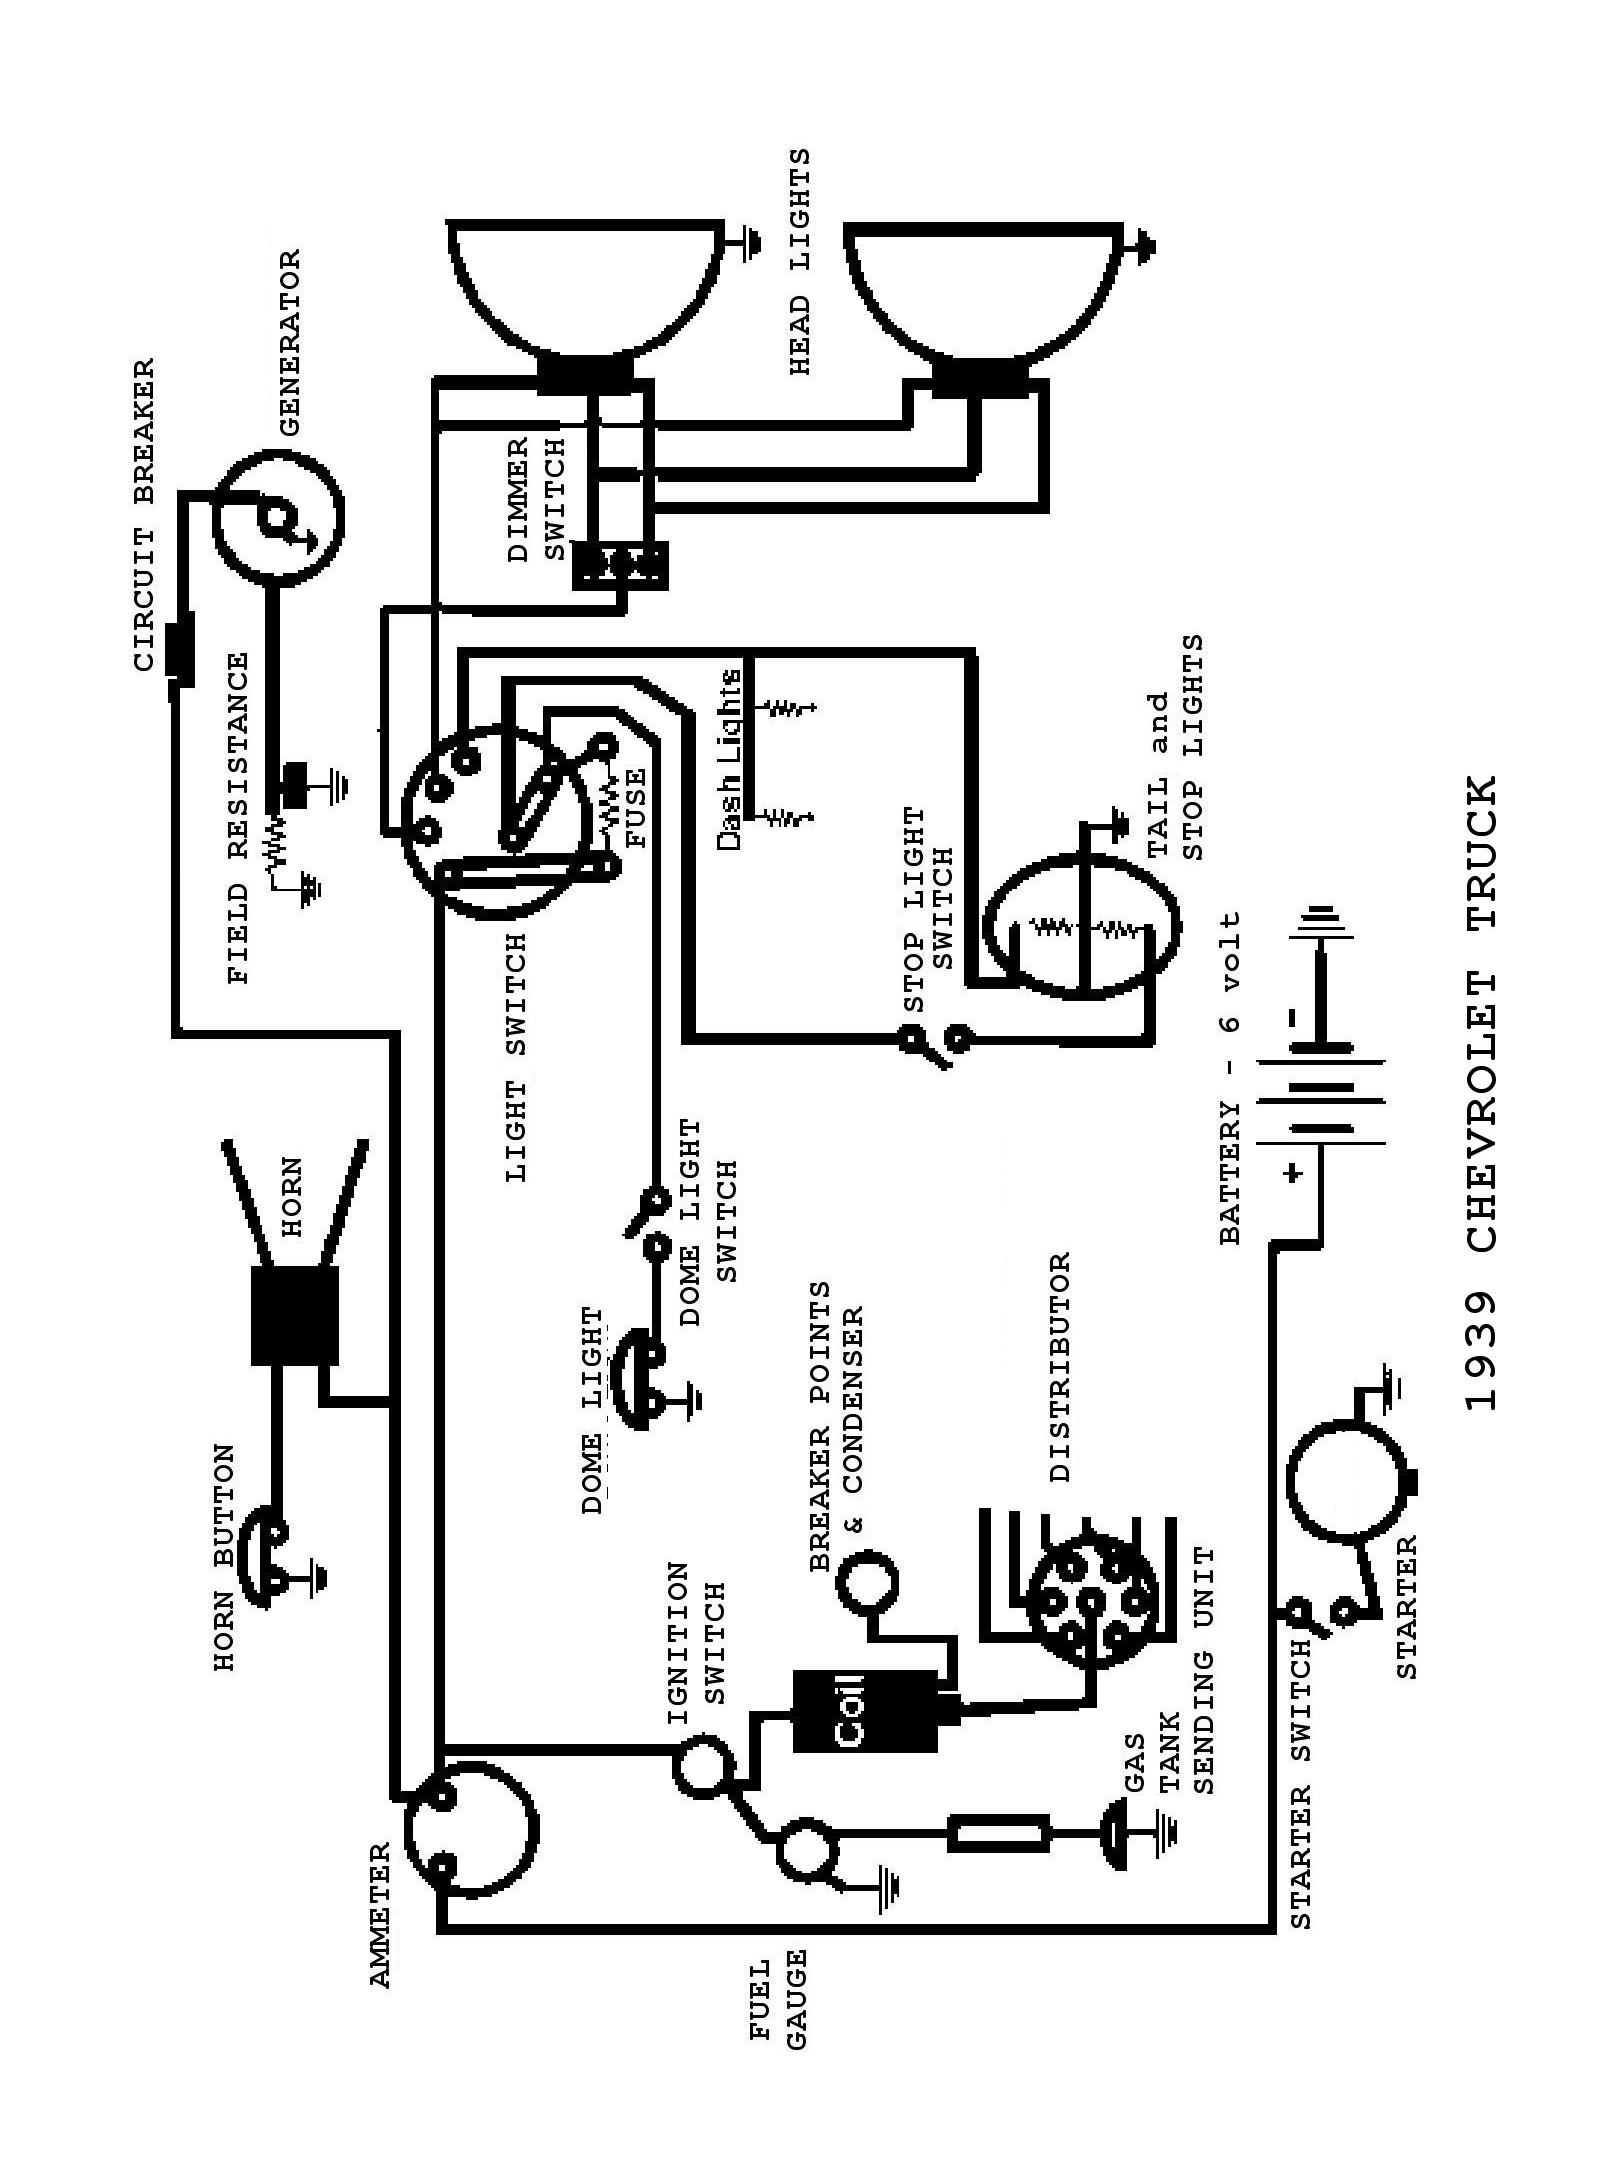 39truck chevy wiring diagrams wiring diagram for 2002 f750 ford truck at crackthecode.co